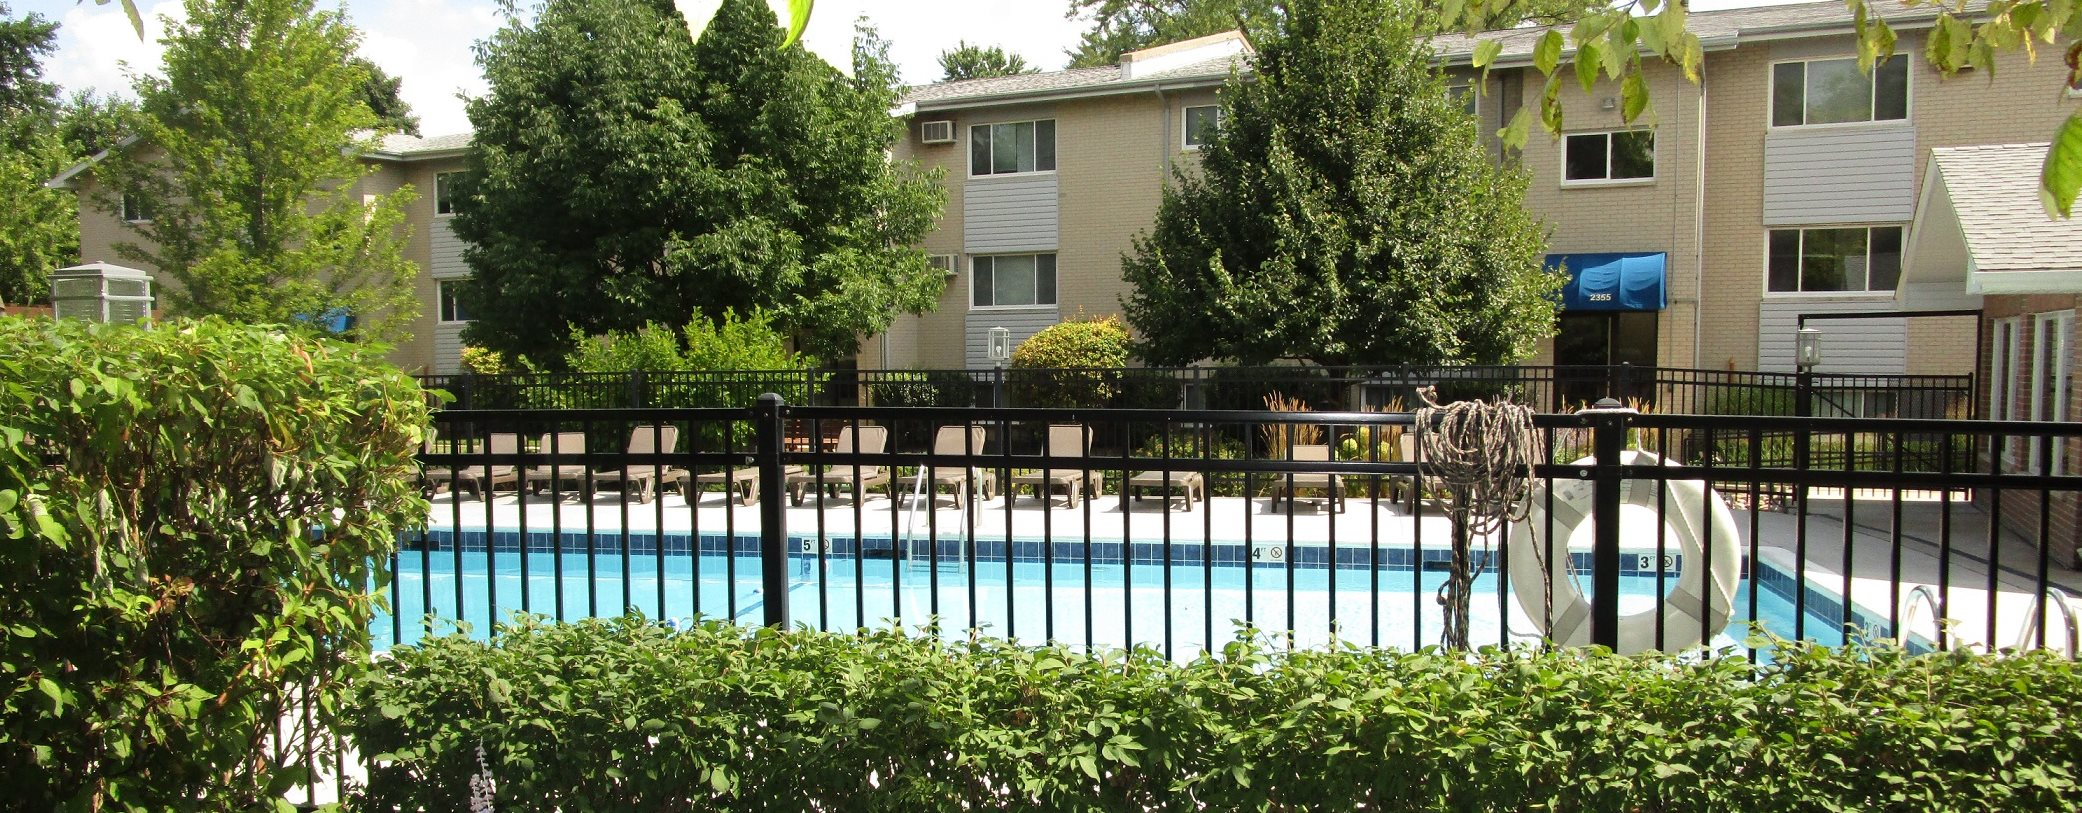 The Birches Apartments | Apartments in Joliet, IL